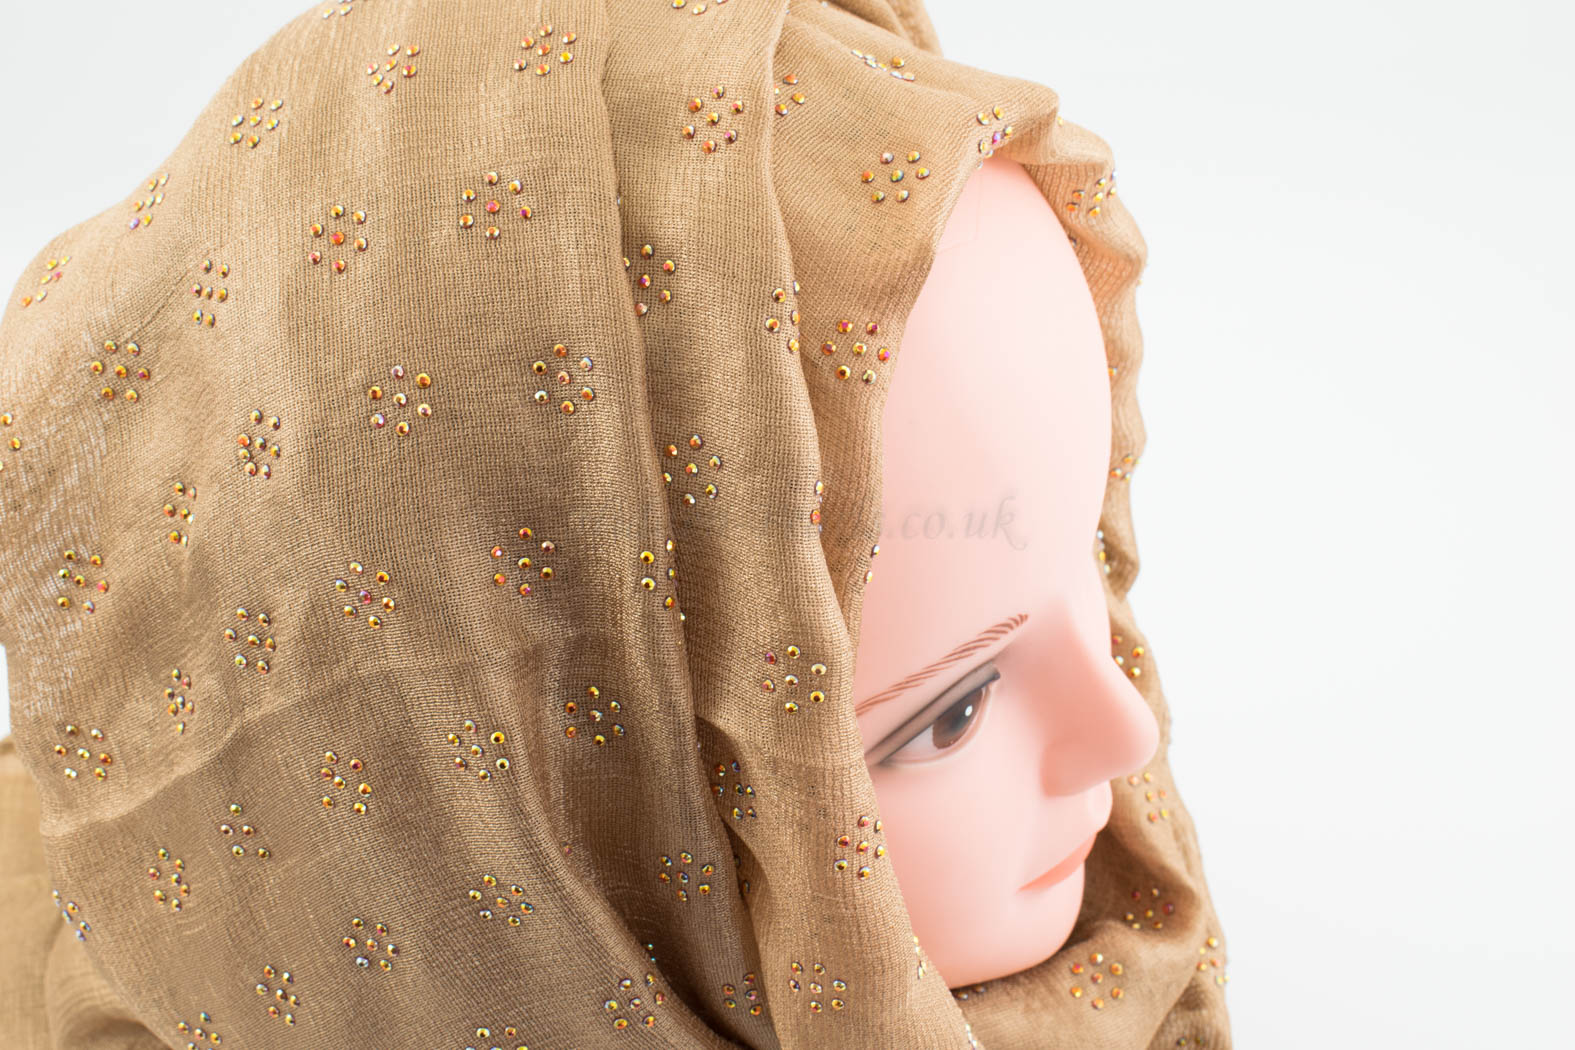 Deluxe Scattered Bliss Wedding Hijab - Deep Gold - Hidden Pearls